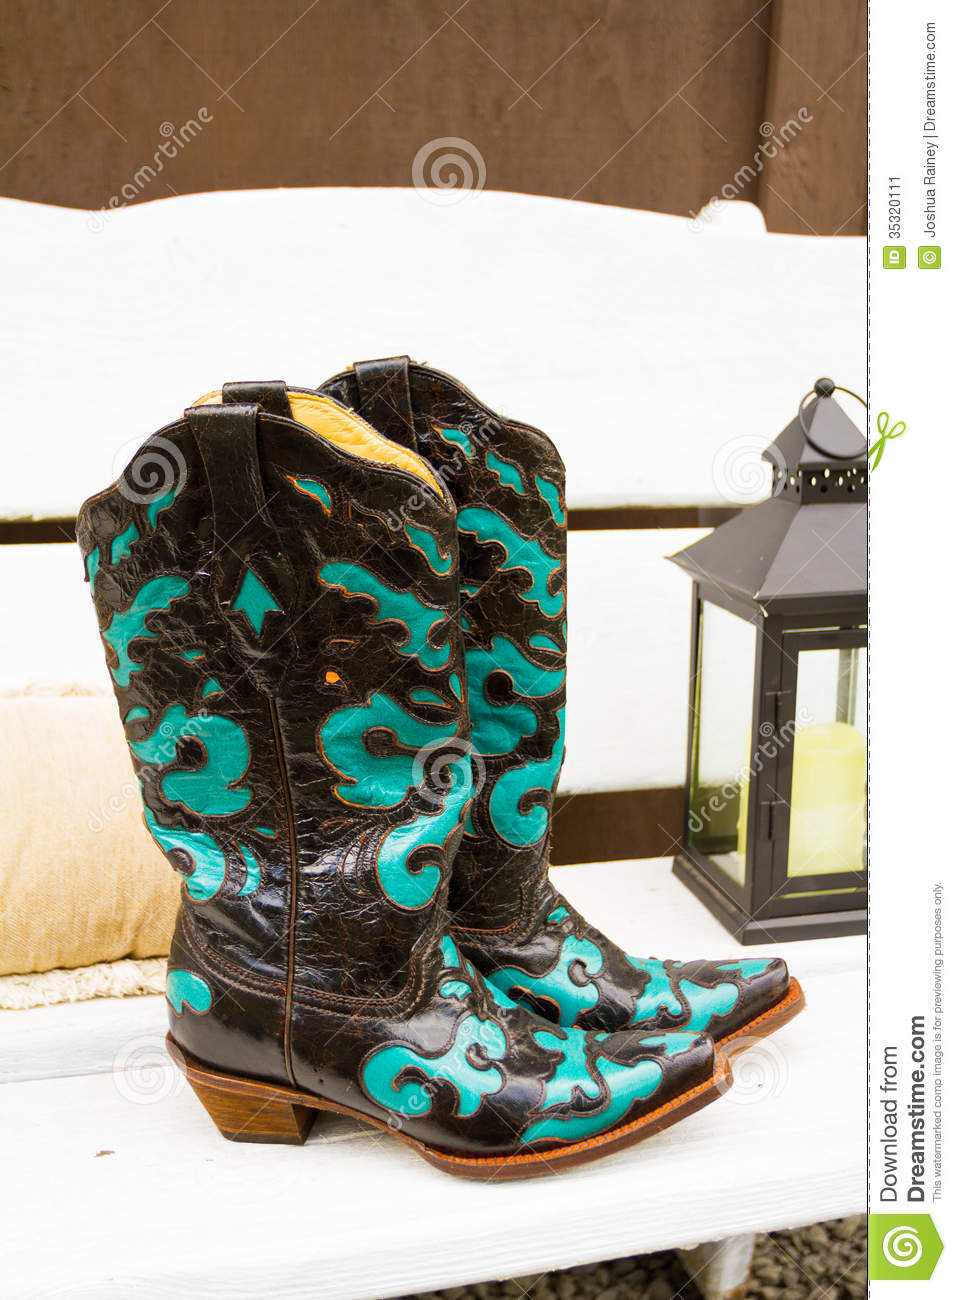 Cowboy Boots Wedding Shoes stock image. Image of country - 35320111